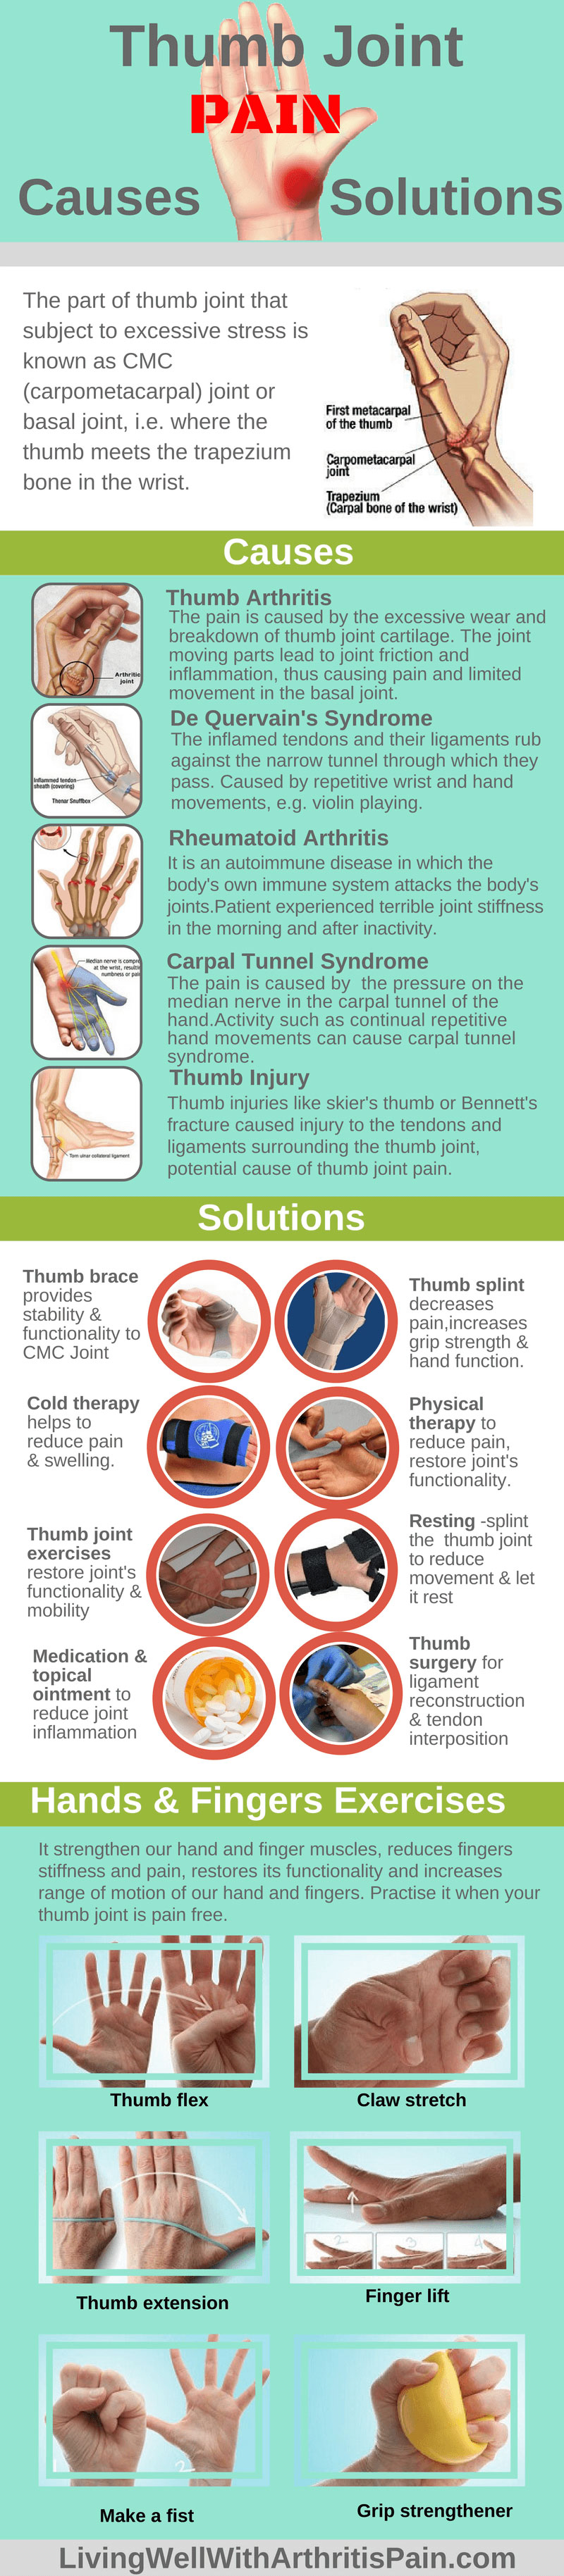 6 thumb joint pain relief exercises